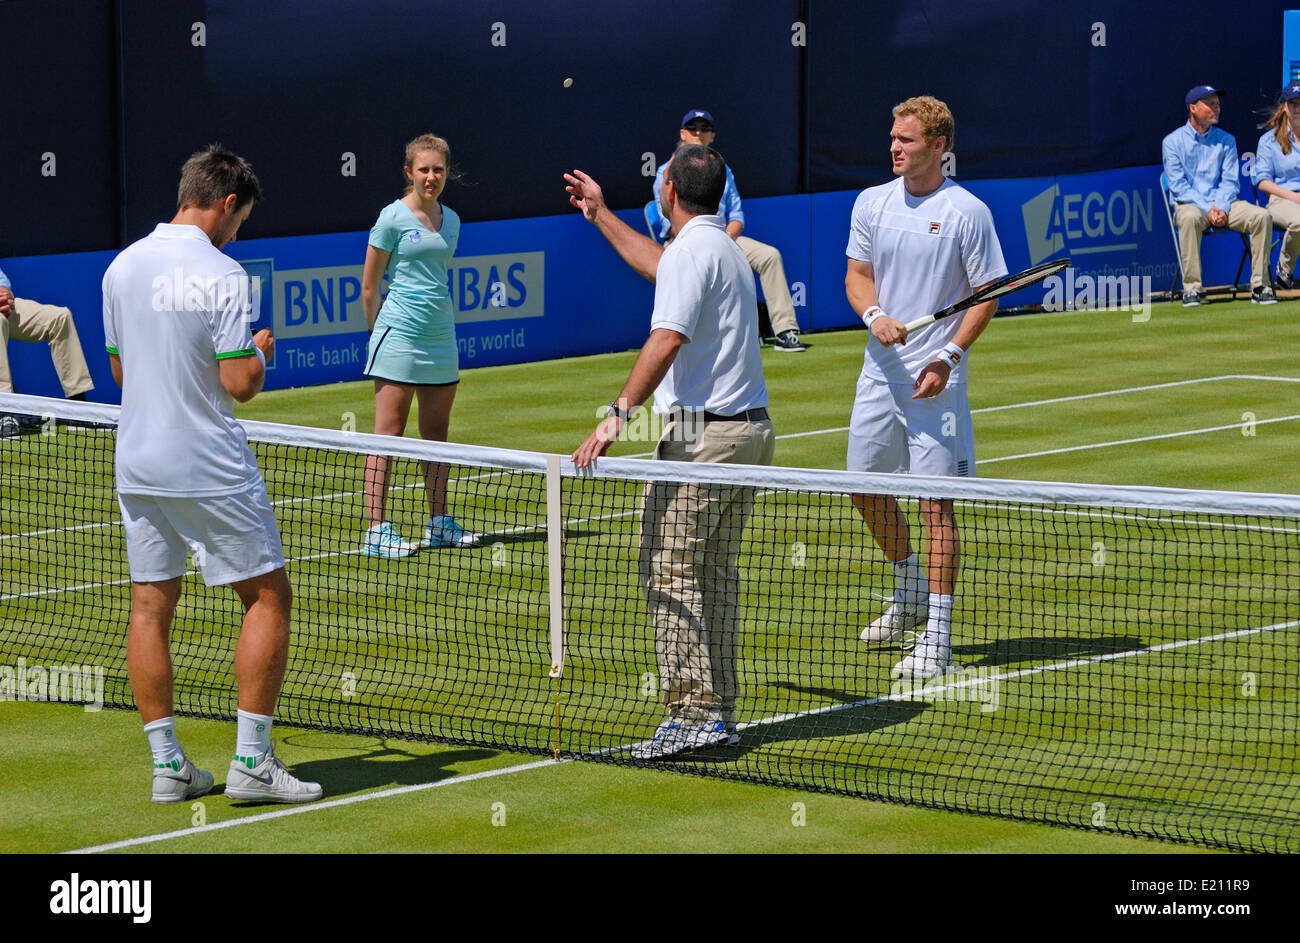 Coin toss at the sart of a mens singles match (Igor Sijsling v Dmitry Tursunov) at the Aegon Tennis Championships, - Stock Image